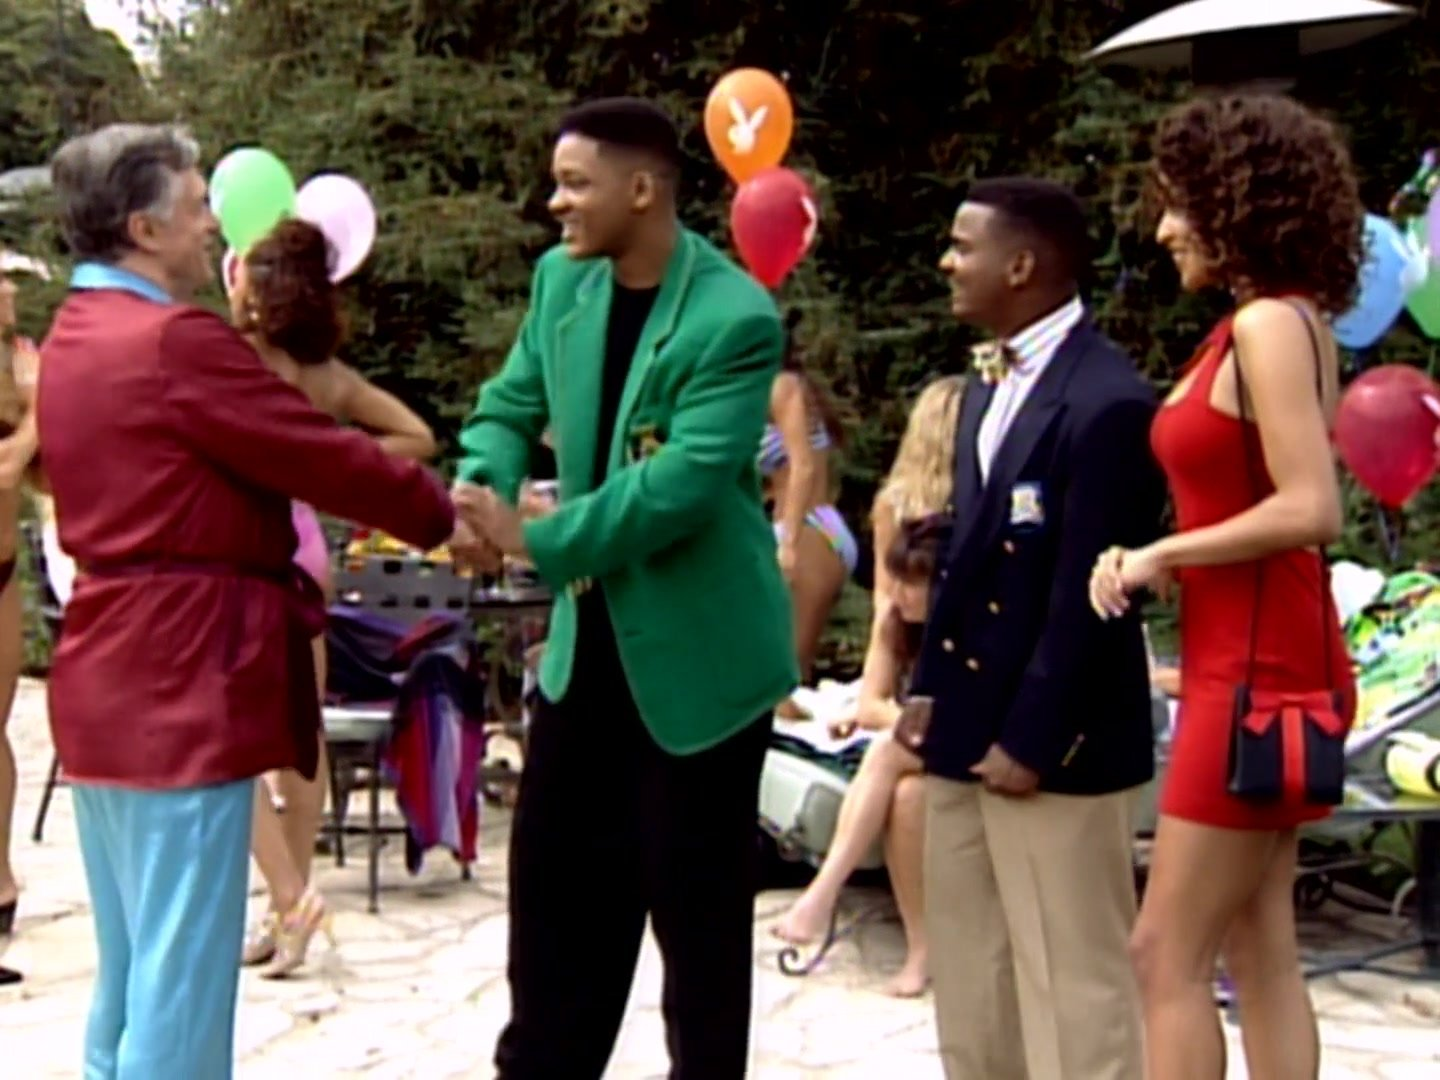 Playboy Mansion and Hugh Hefner in The Fresh Prince of Bel Air TV Show 3 20 Things You May Not Have Realised About The Fresh Prince Of Bel-Air